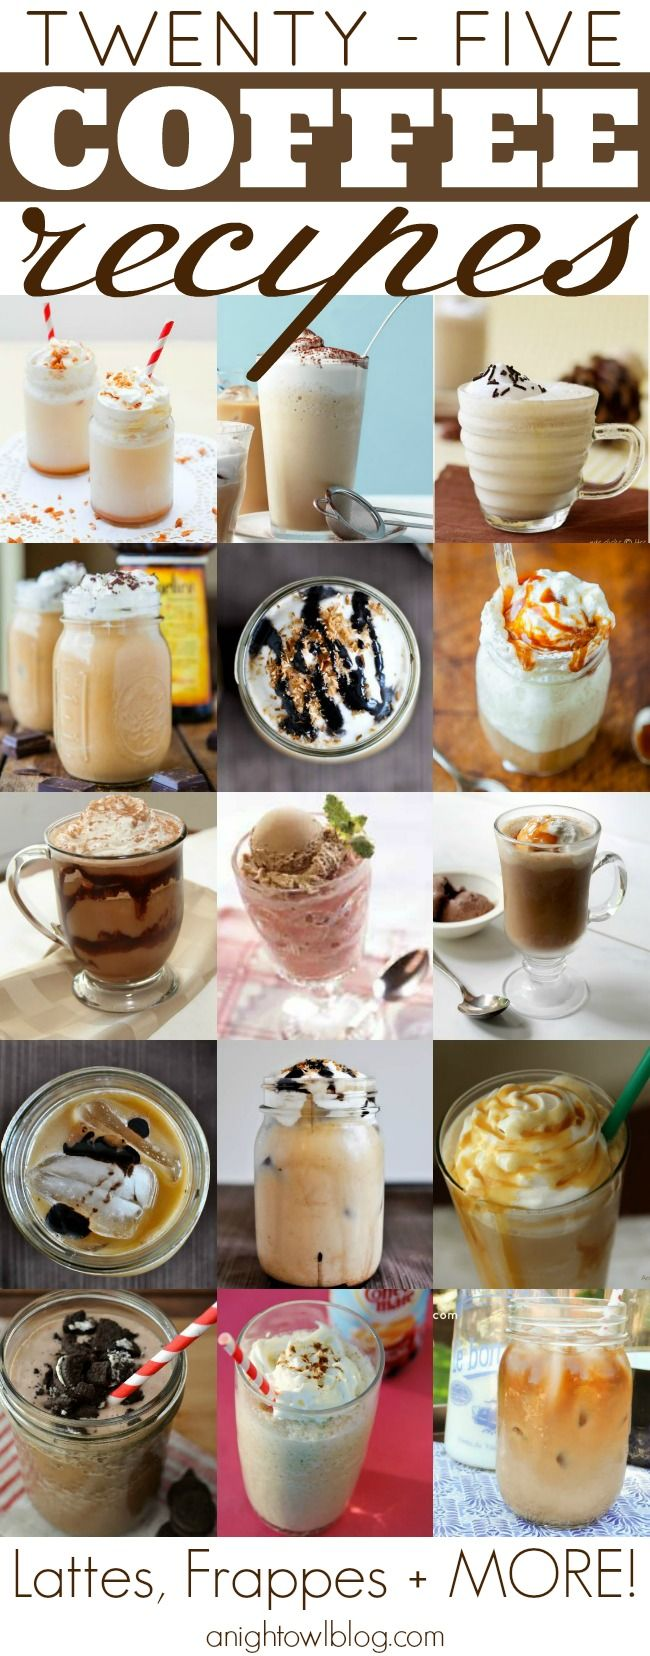 25 Delicious Coffee Recipes - lattes, frappes and more!  All 25 are here and each one is well worth trying!!